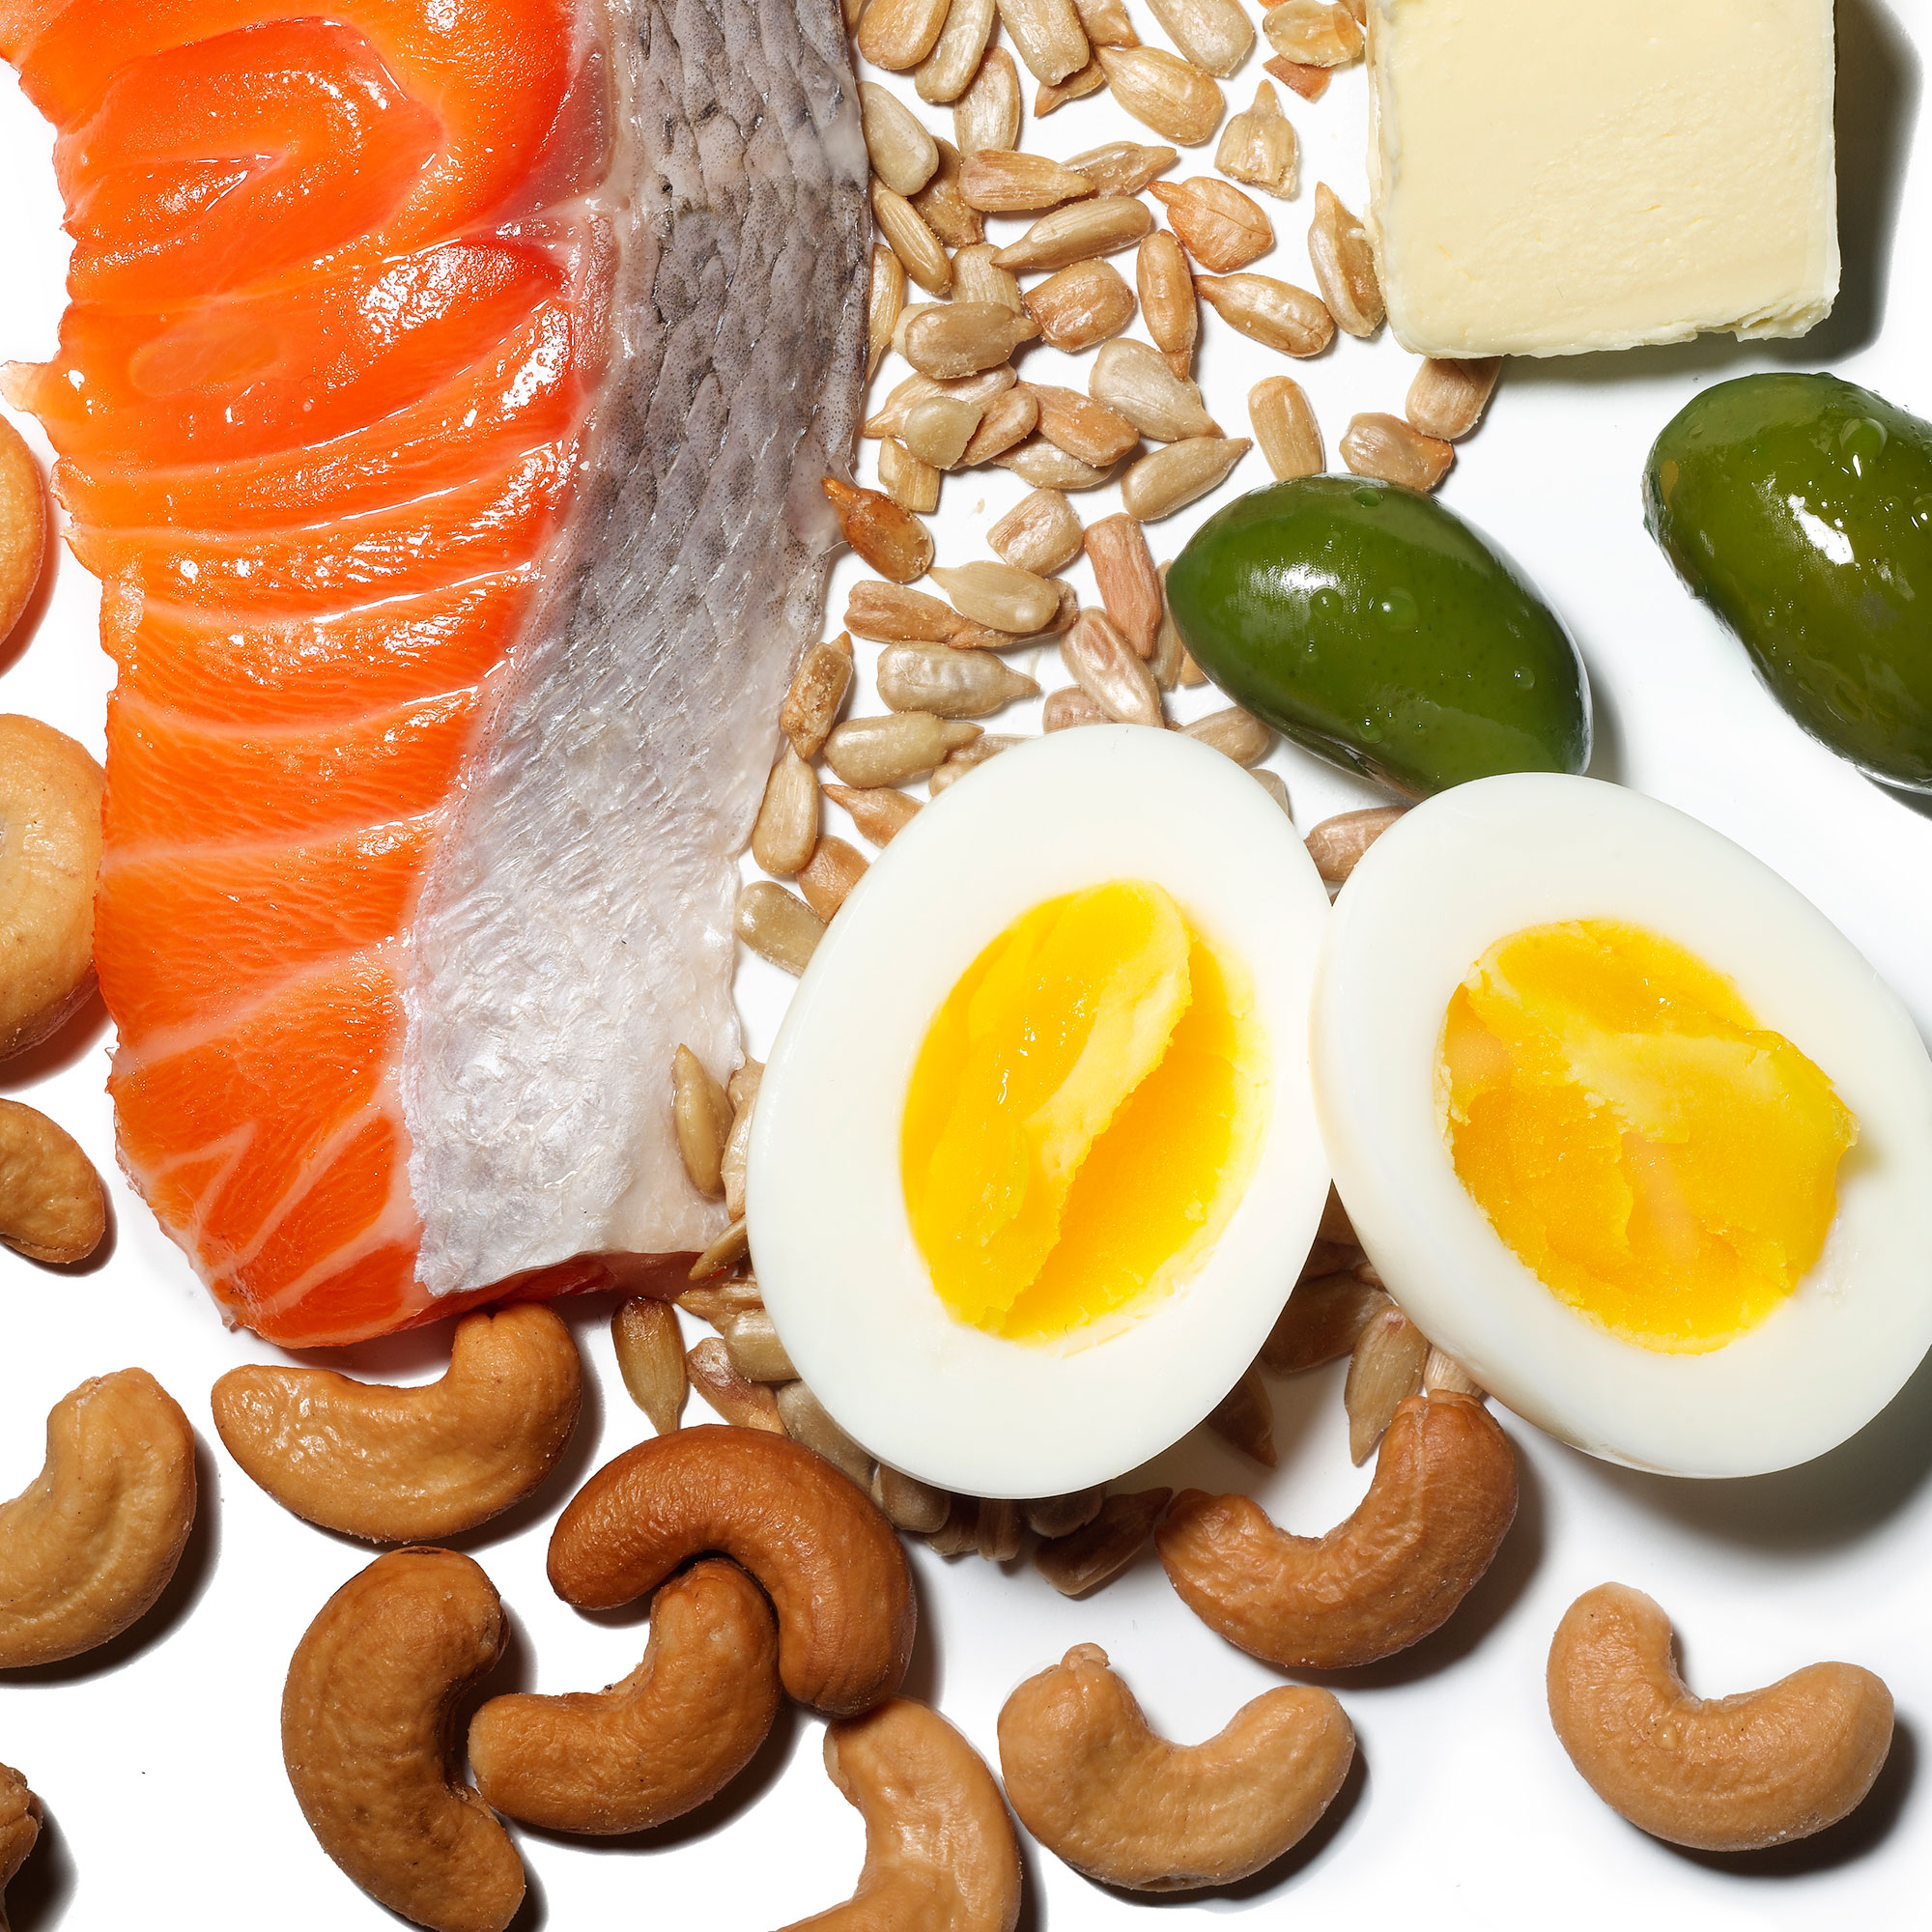 Healthy High Fat Foods You Should Eat